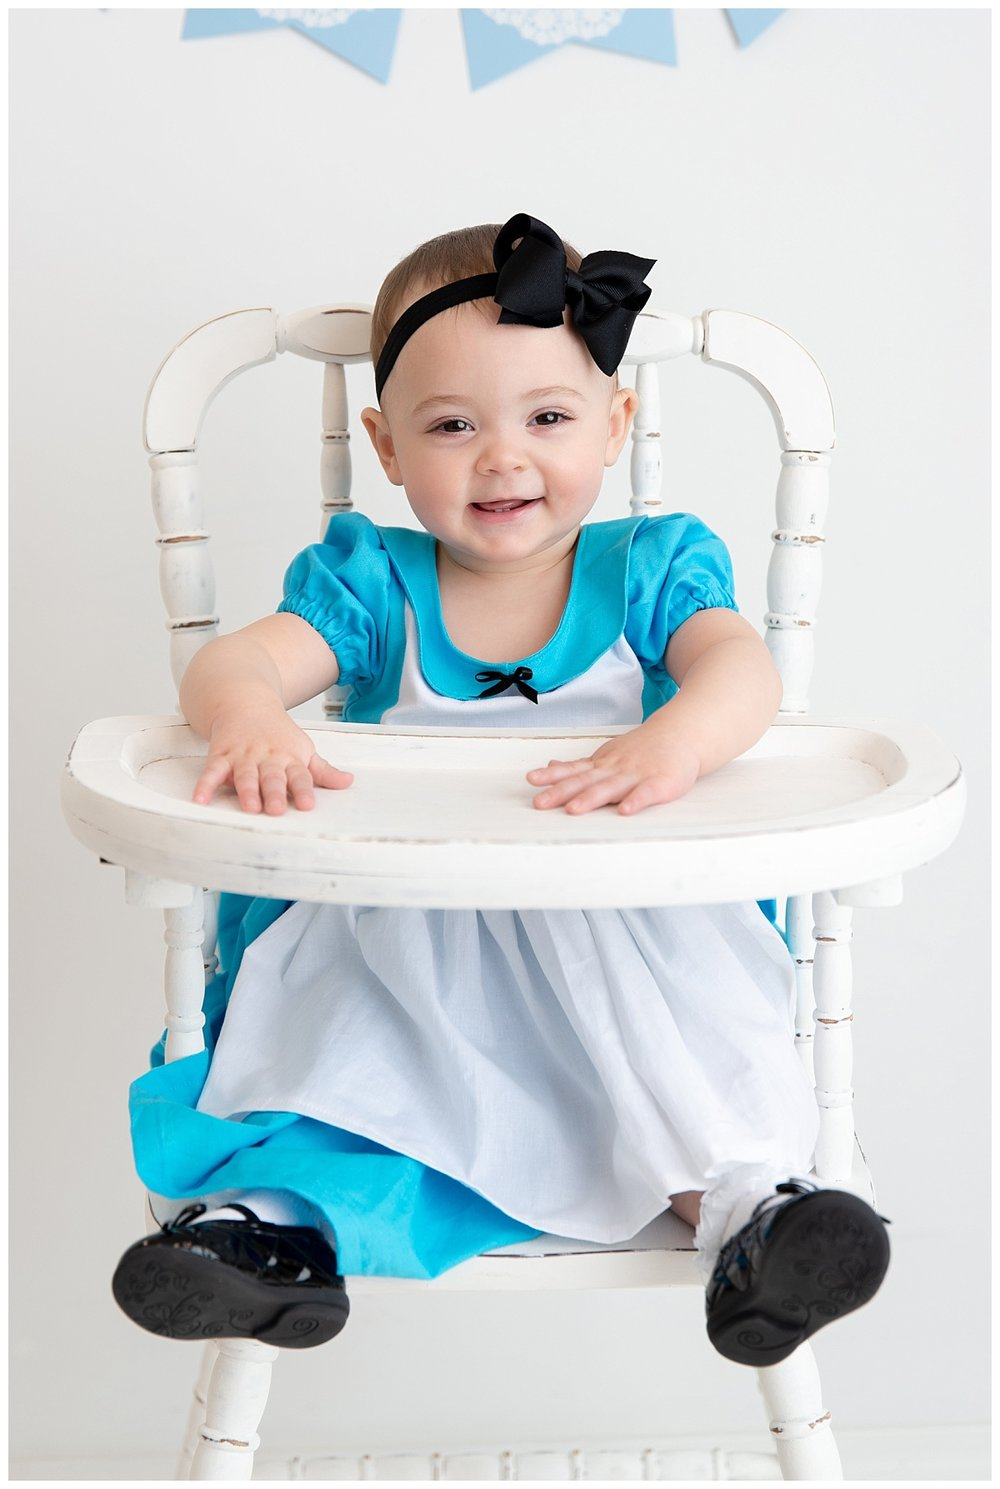 st-louis-birthday-photographer-alice-in-wonderland-dress-baby-girl-sitting-in-white-highchair.jpg